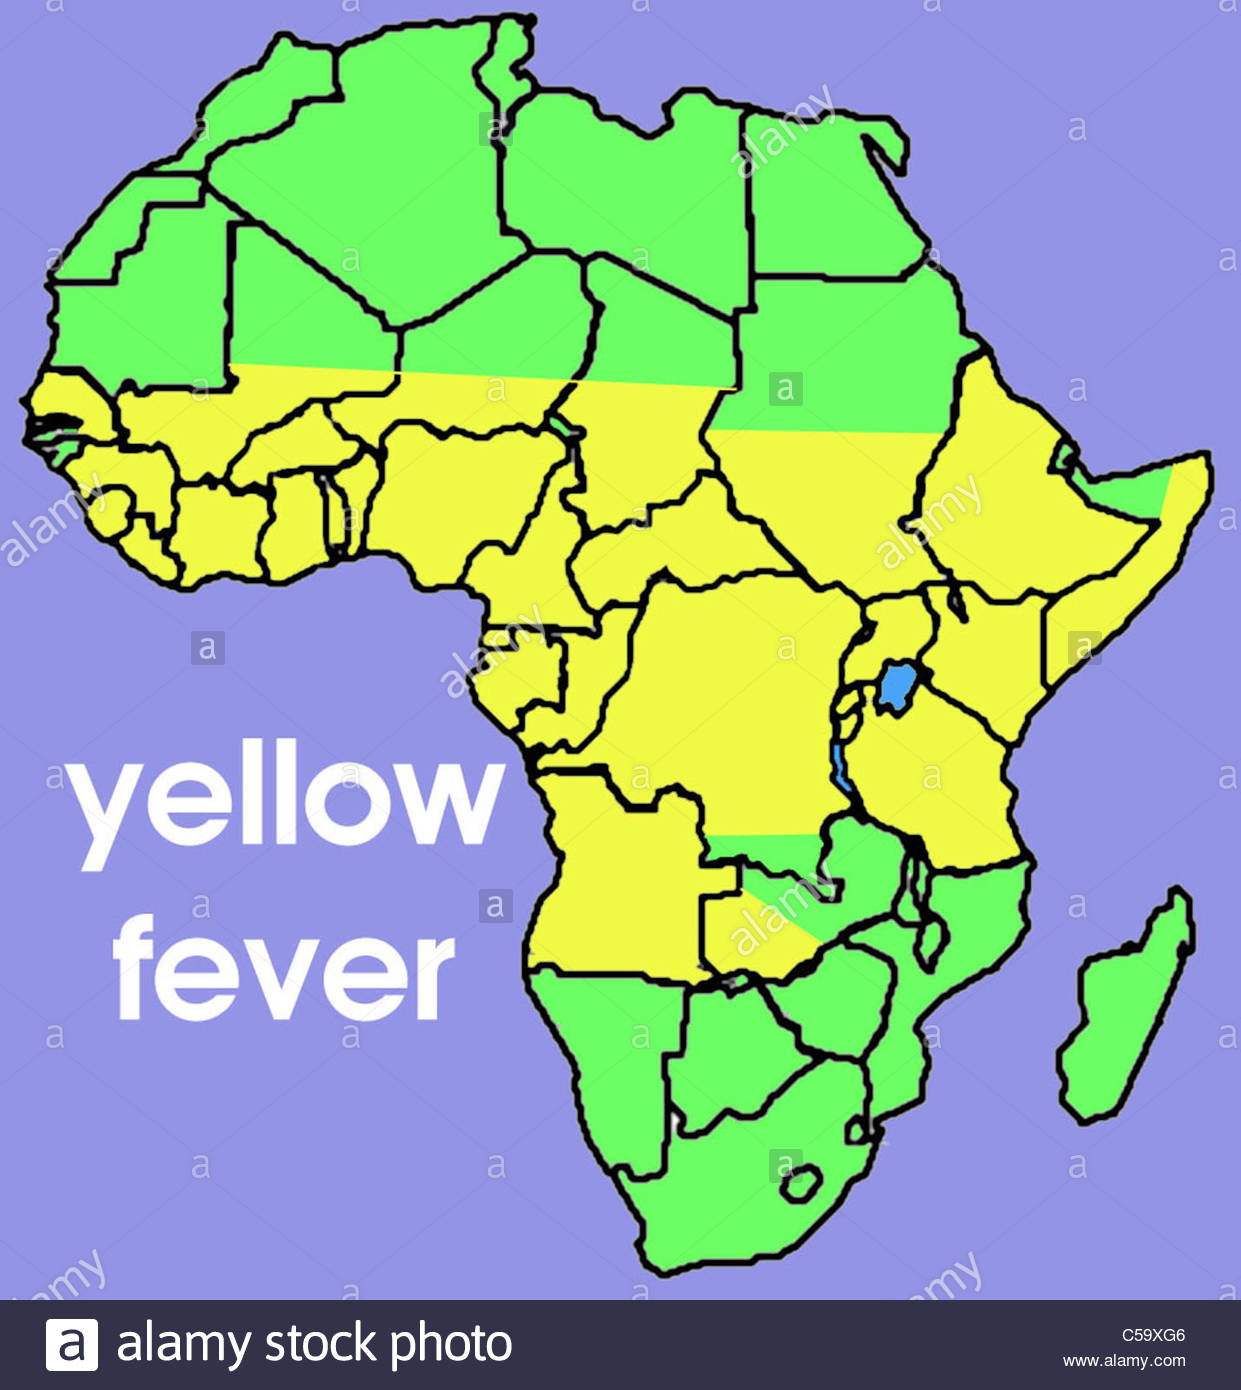 Yellow Fever Map on rabies map, varicella map, typhoid fever, smallpox map, typhoid map, hepatitis b map, cholera map, vaccine preventable diseases map, river blindness map, yellow marker map, tuberculosis map, meningitis map, dengue fever, dark side of the moon map, west nile virus, parkinson's disease map, bubonic plague, trichinosis map, tetanus map, scarlet fever, zika virus map, hantavirus map, polio map, epilepsy map, malaria map,